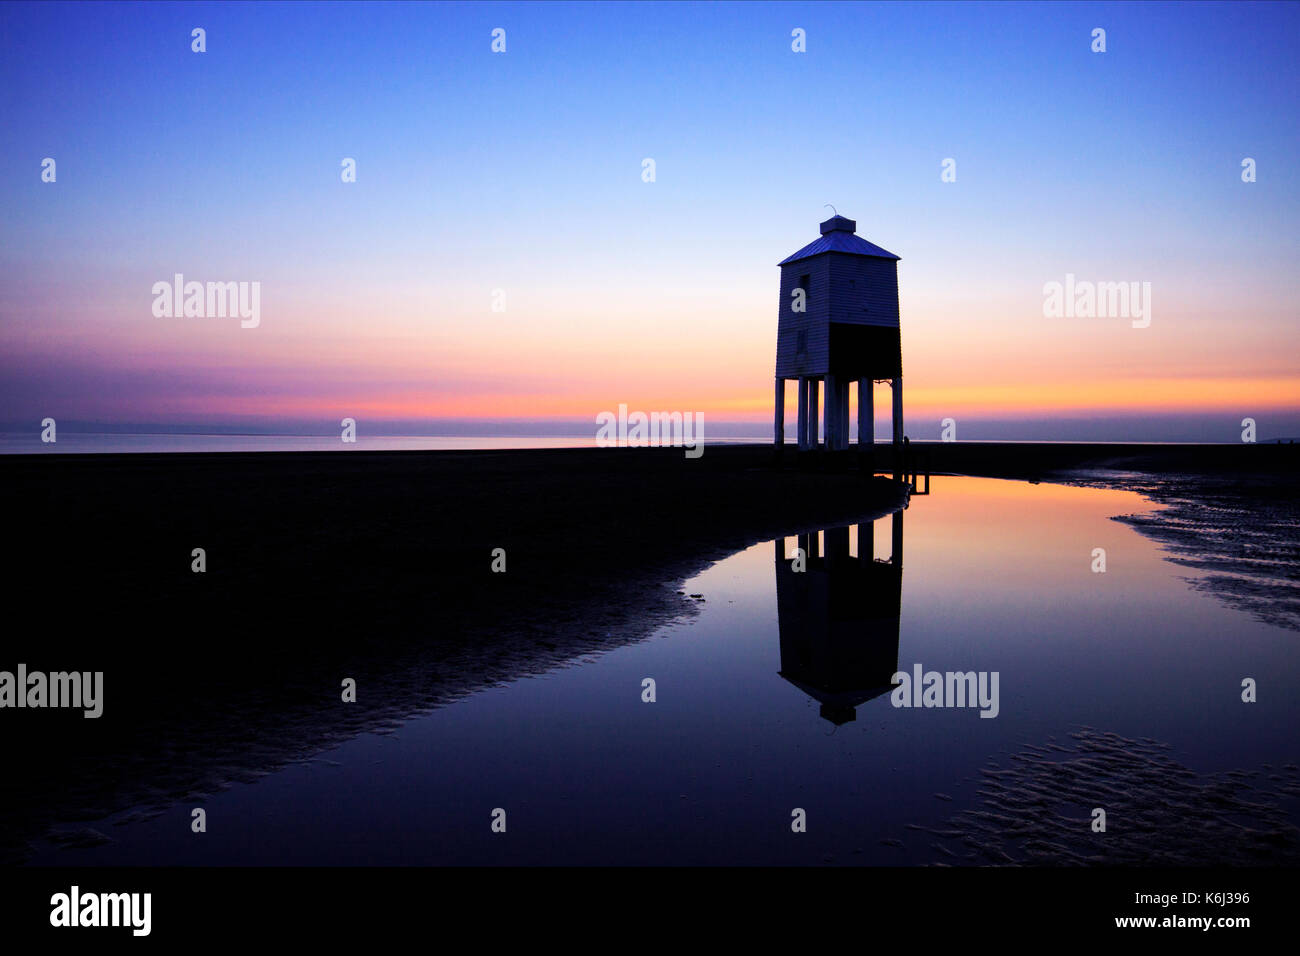 the-burnham-on-sea-uk-low-lighthouse-at-